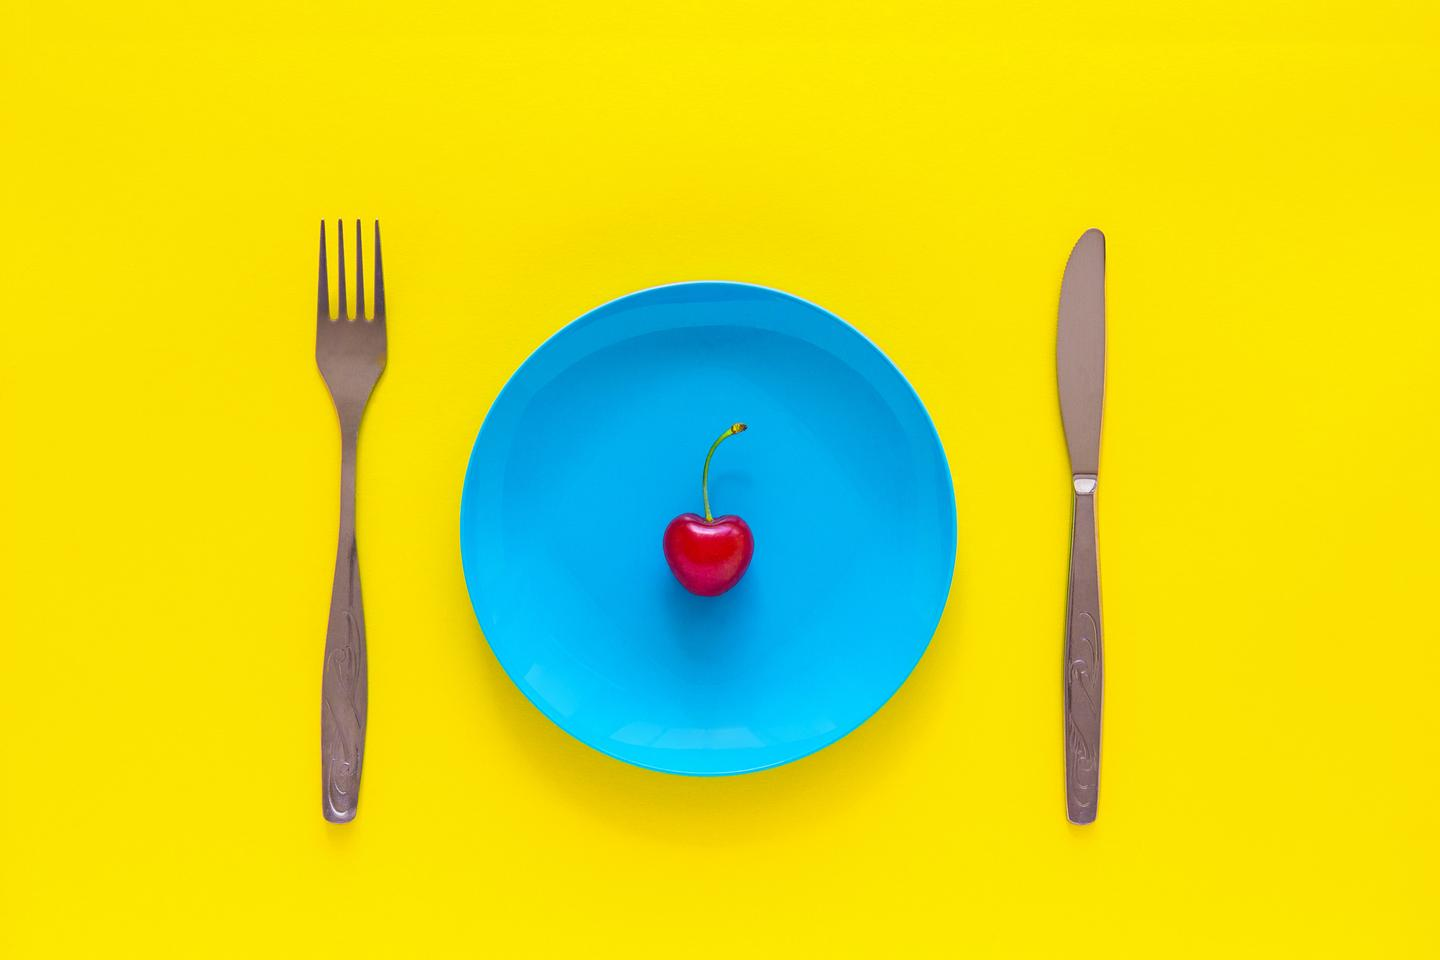 A new study has shown how periods of simulated fasting in mice can prevent obesity, improve heart health and increase their lifespan